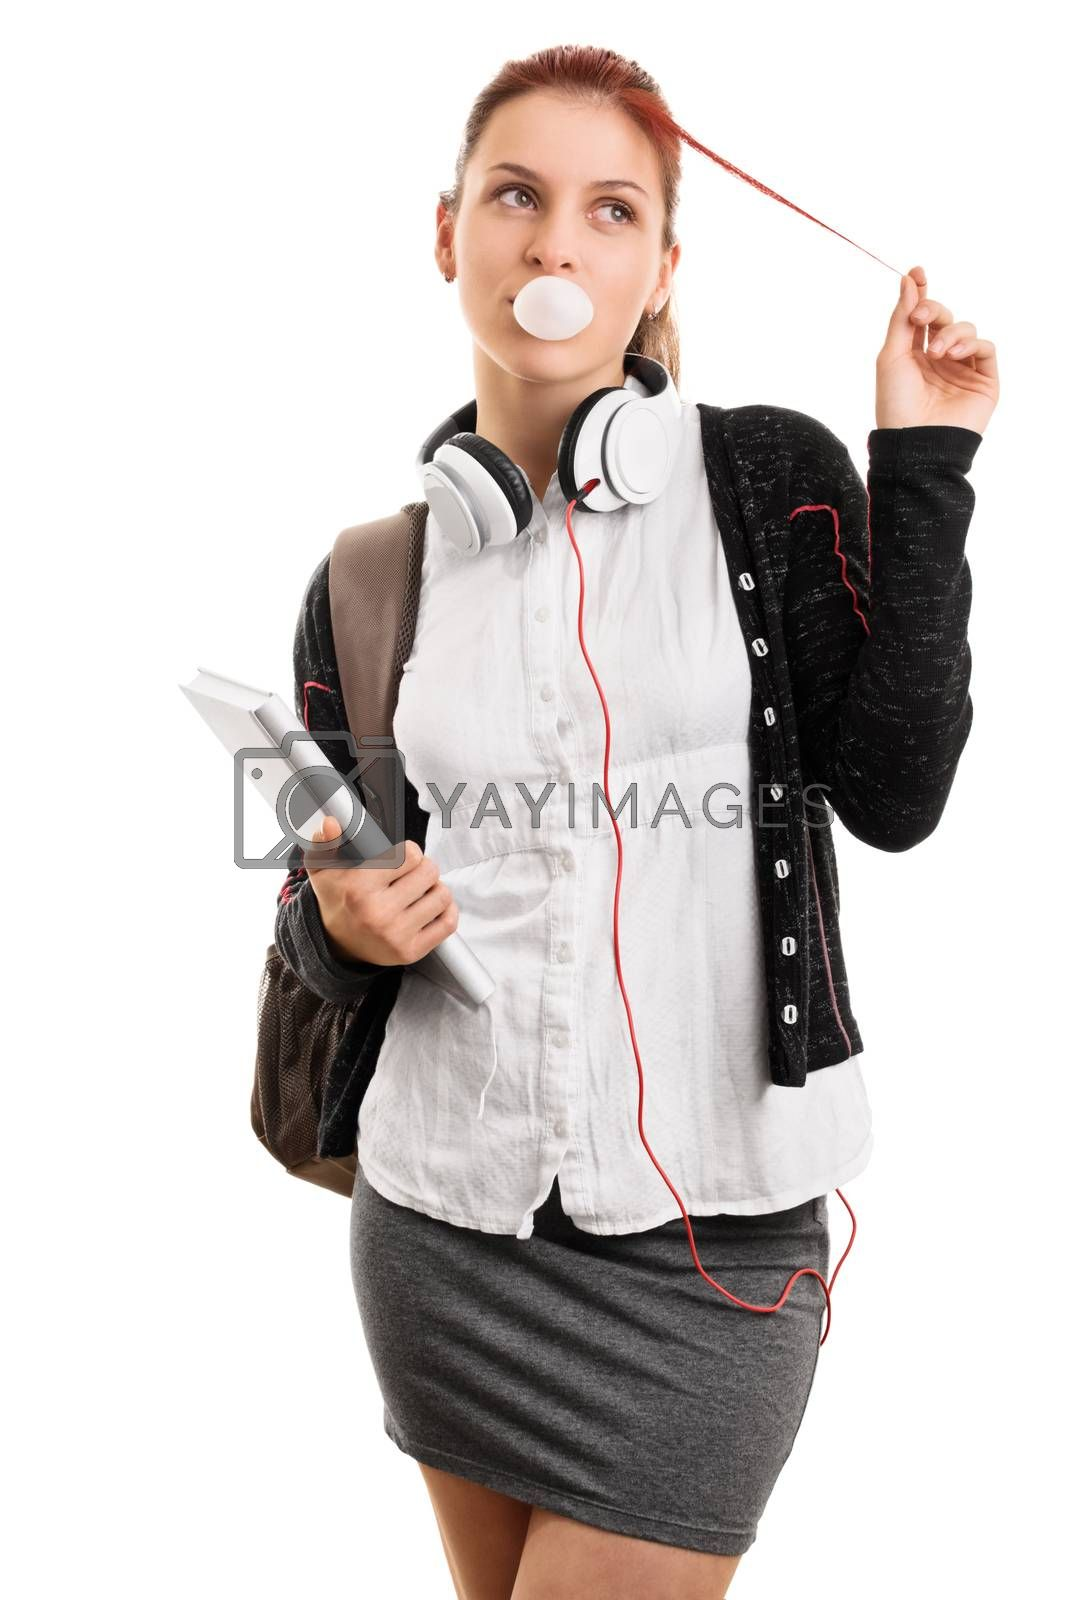 High school lifestyle. Young girl with books and backpack making bubble gum bubbles, playing with her hair, isolated on white background. Most popular girl in school.